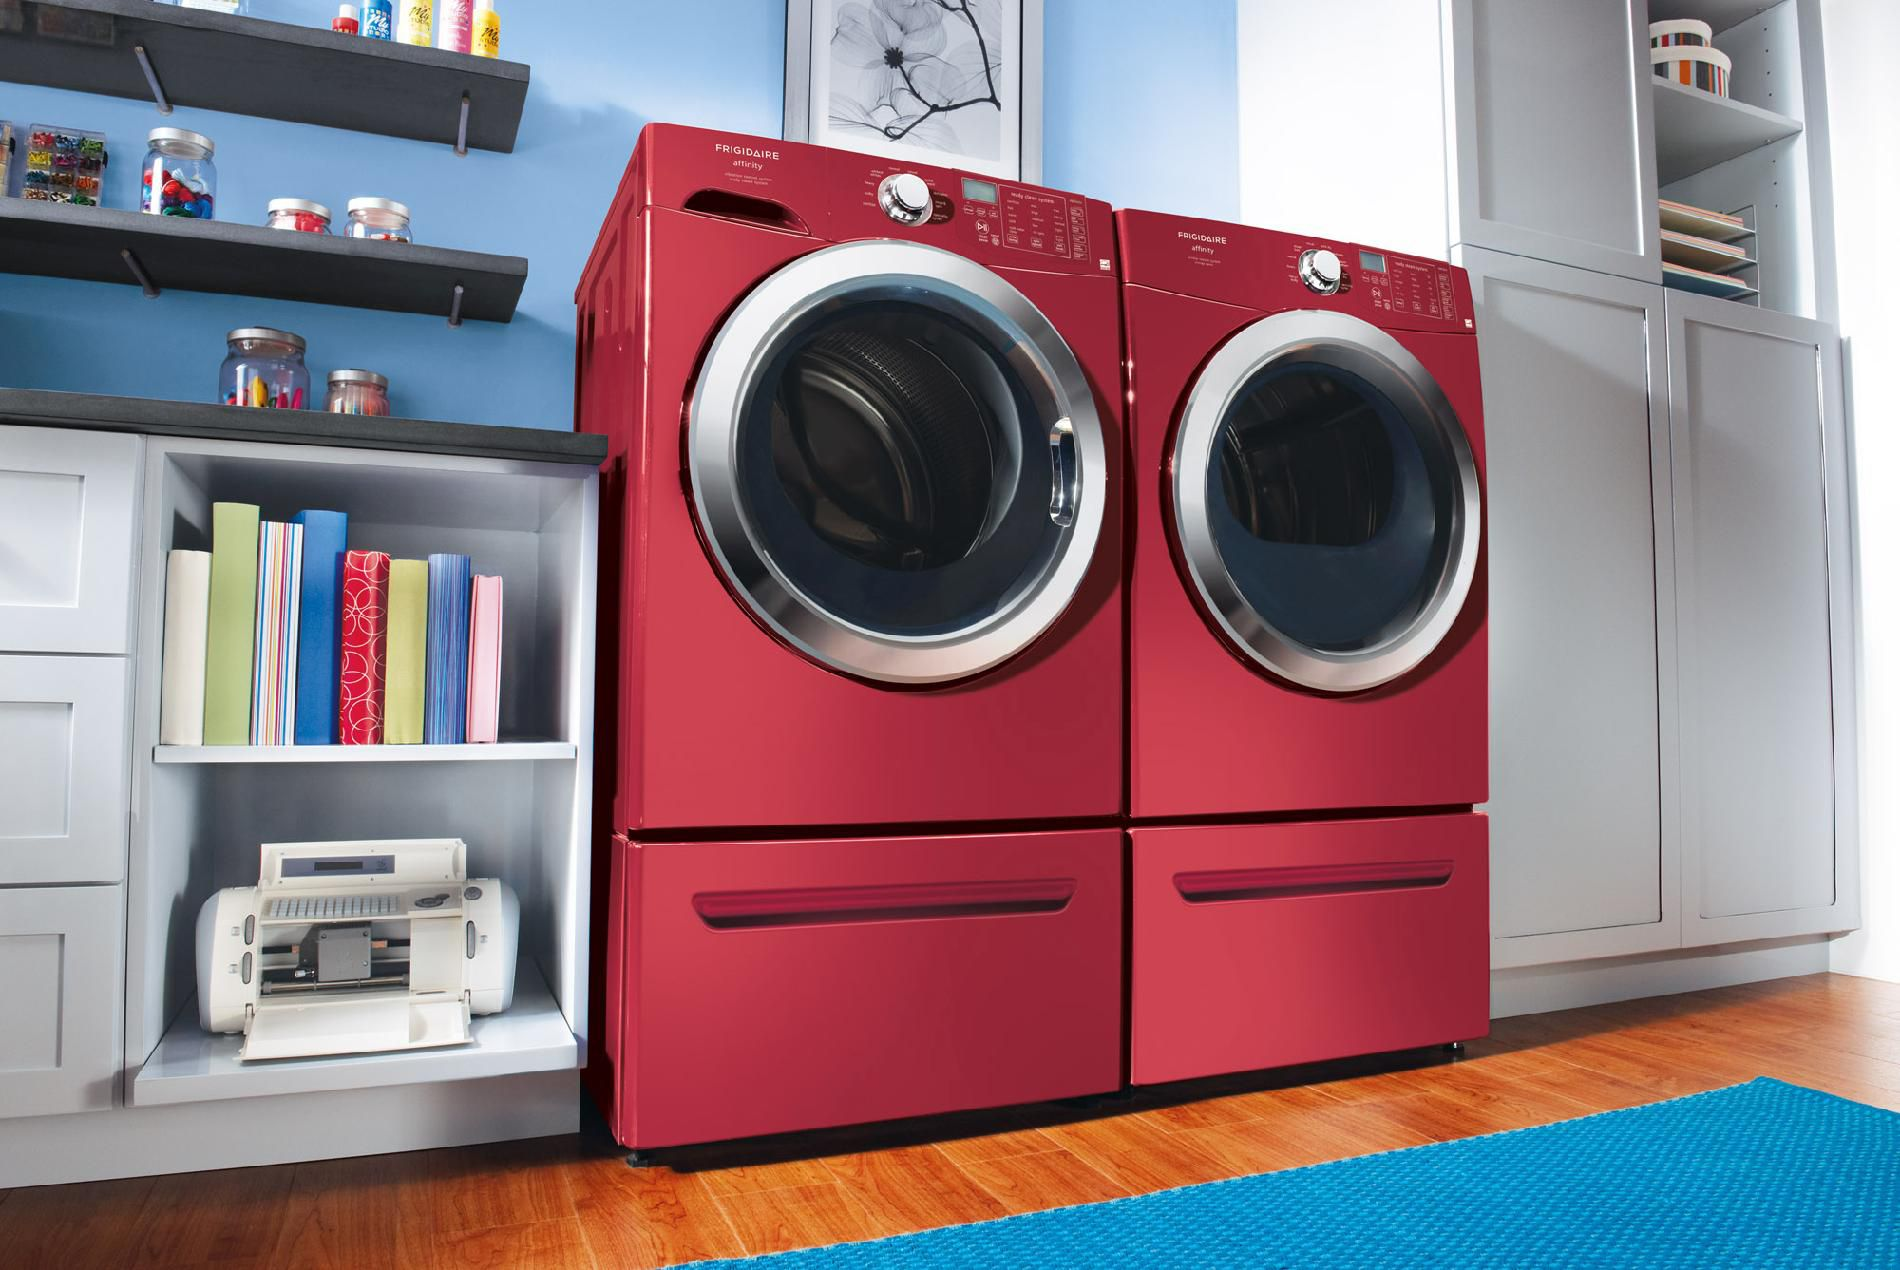 Frigidaire 7.0 cu. ft. Ready Steam™ Gas Dryer w/ Stainless Steel Drum - Classic Red